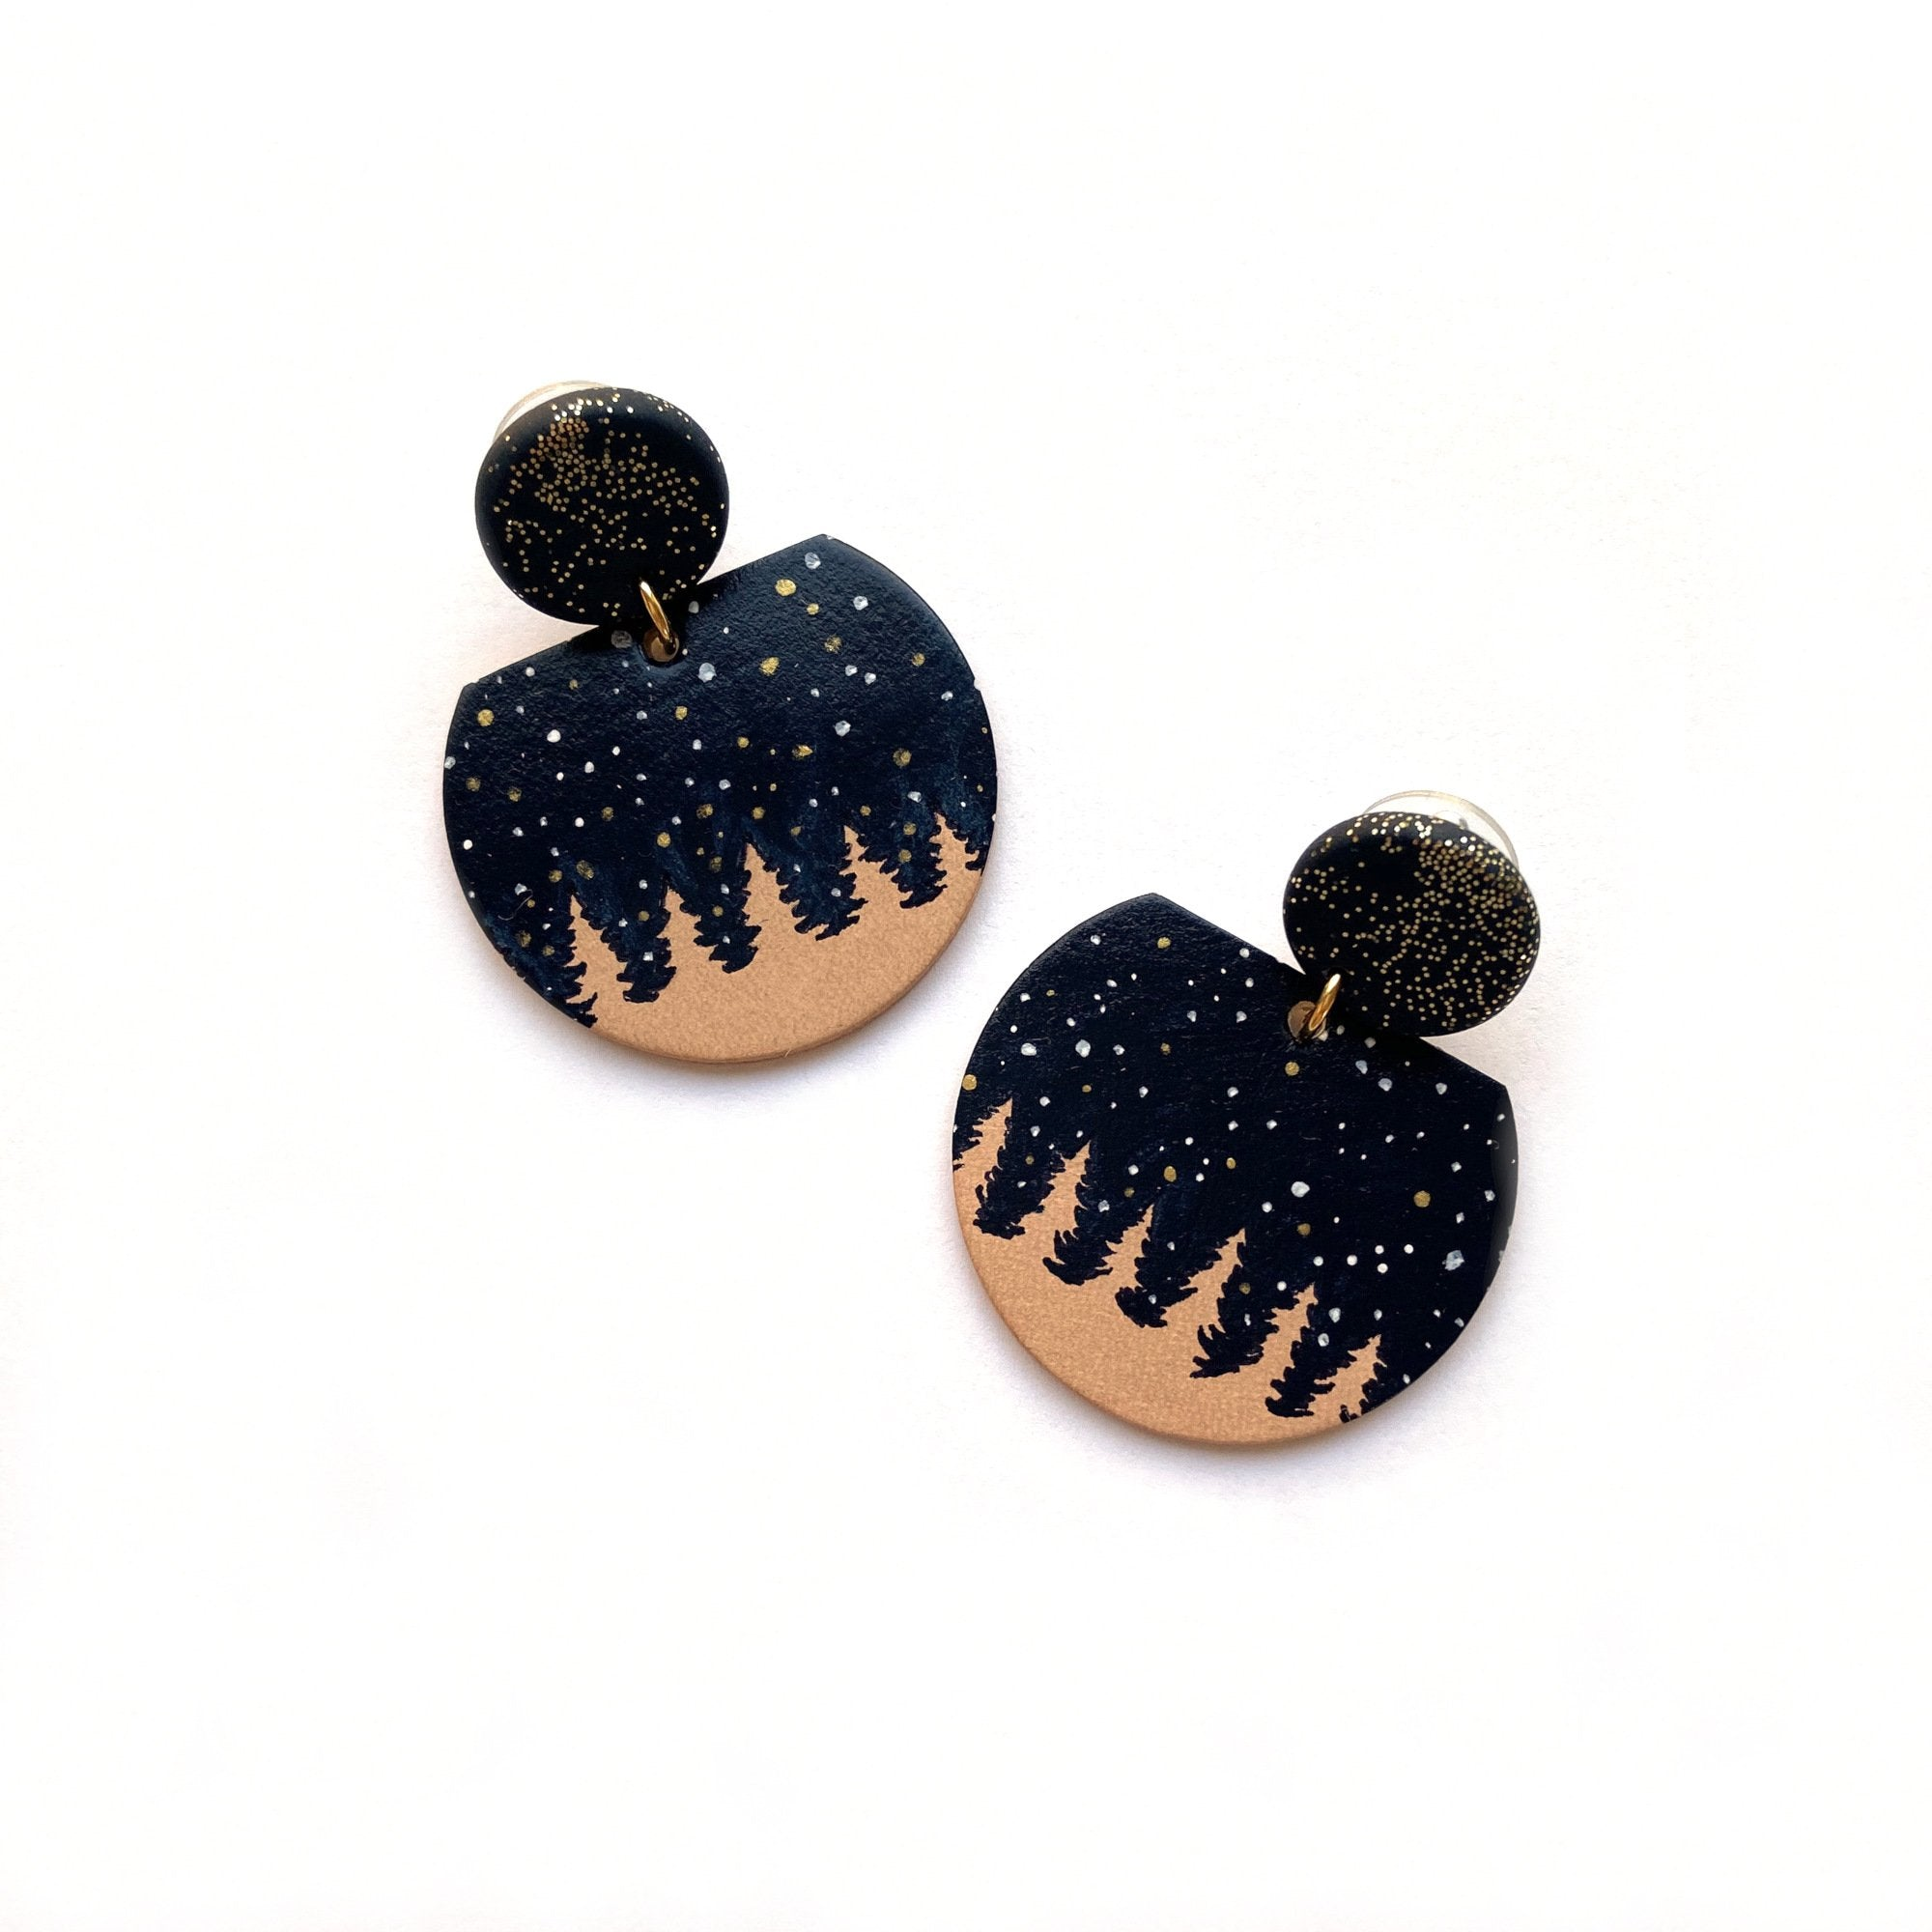 Statement leather earrings with night sky by Two boss beads